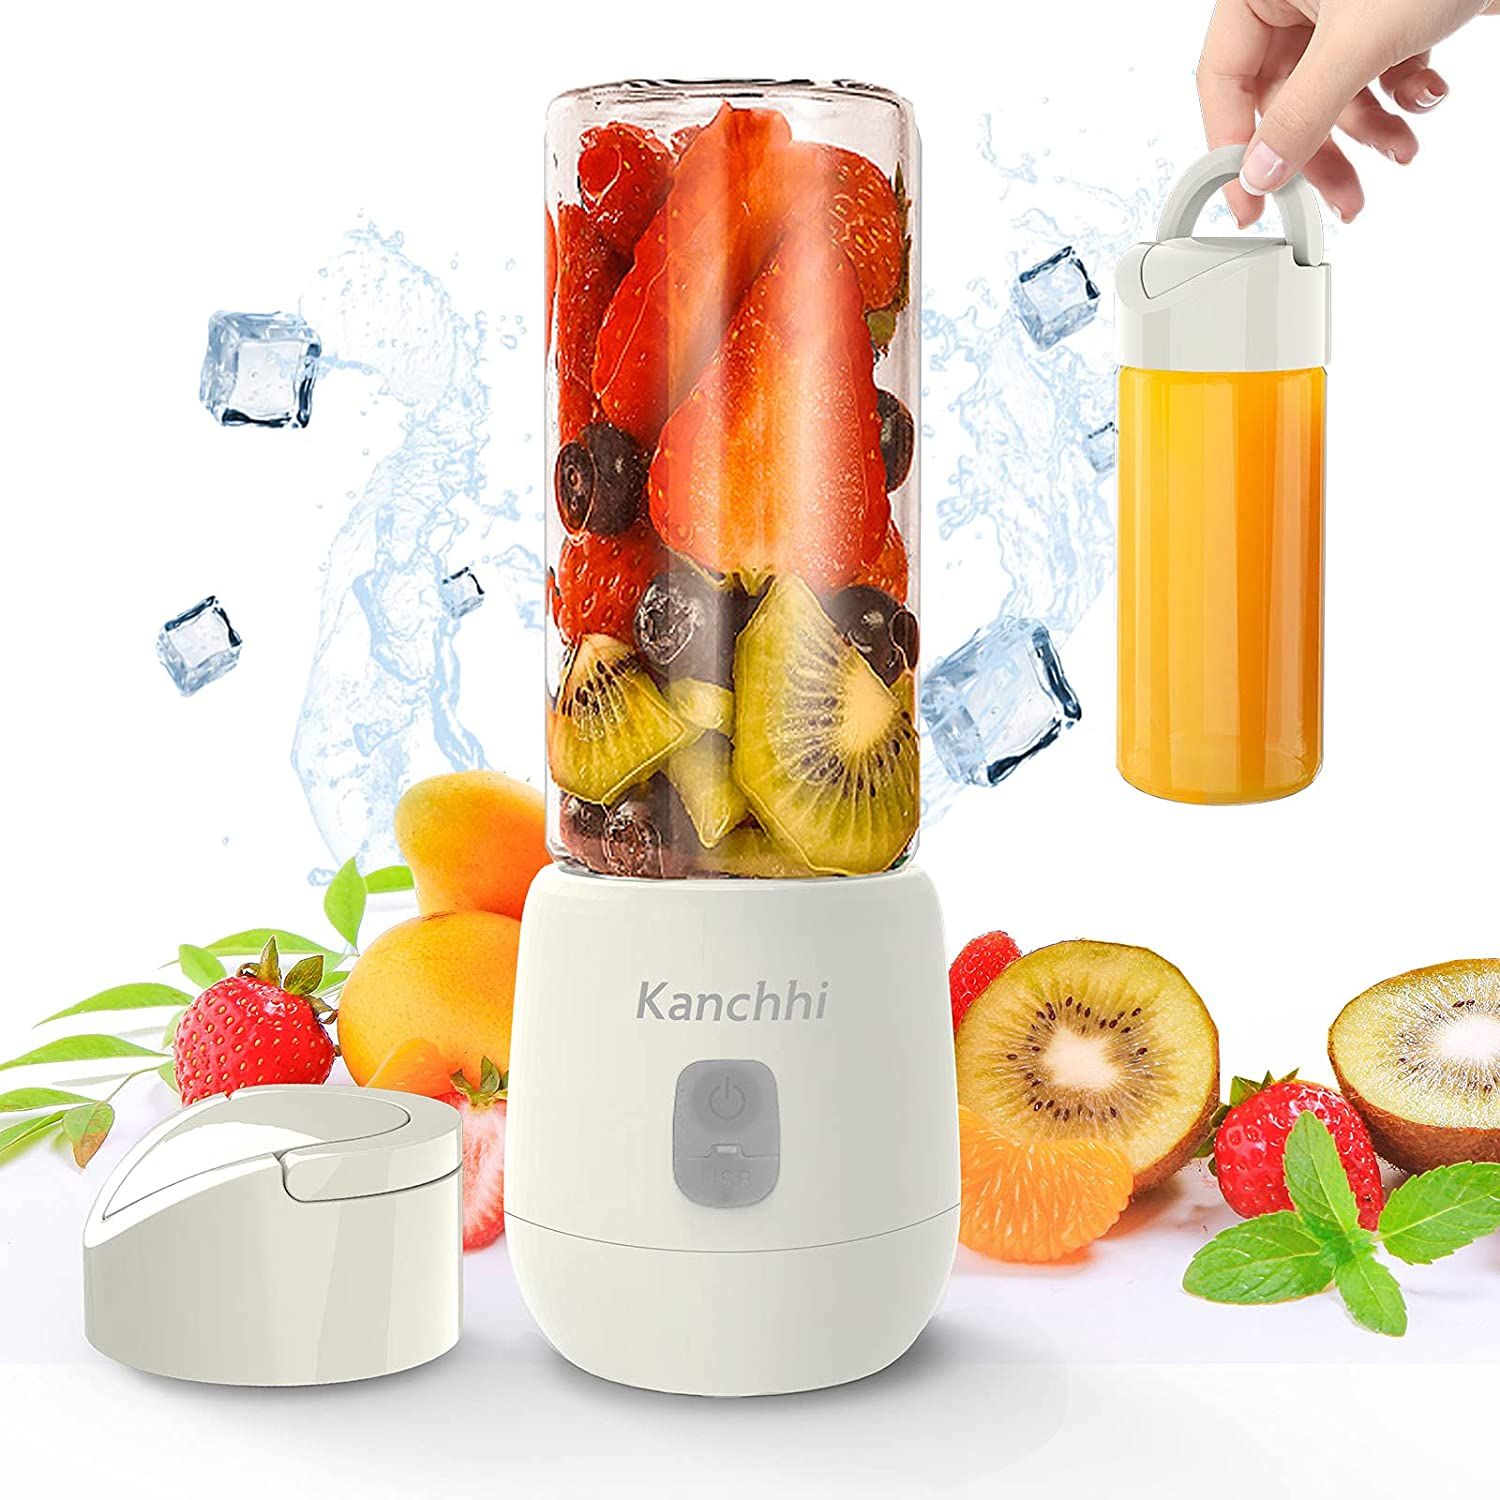 Portable Blender Glass, 14 OZ Personal Smoothie Blender with 6 Blades, Rechargeable USB Mini Small Blender Cup for for Juice, Yogurt, Smoothies and Shakes